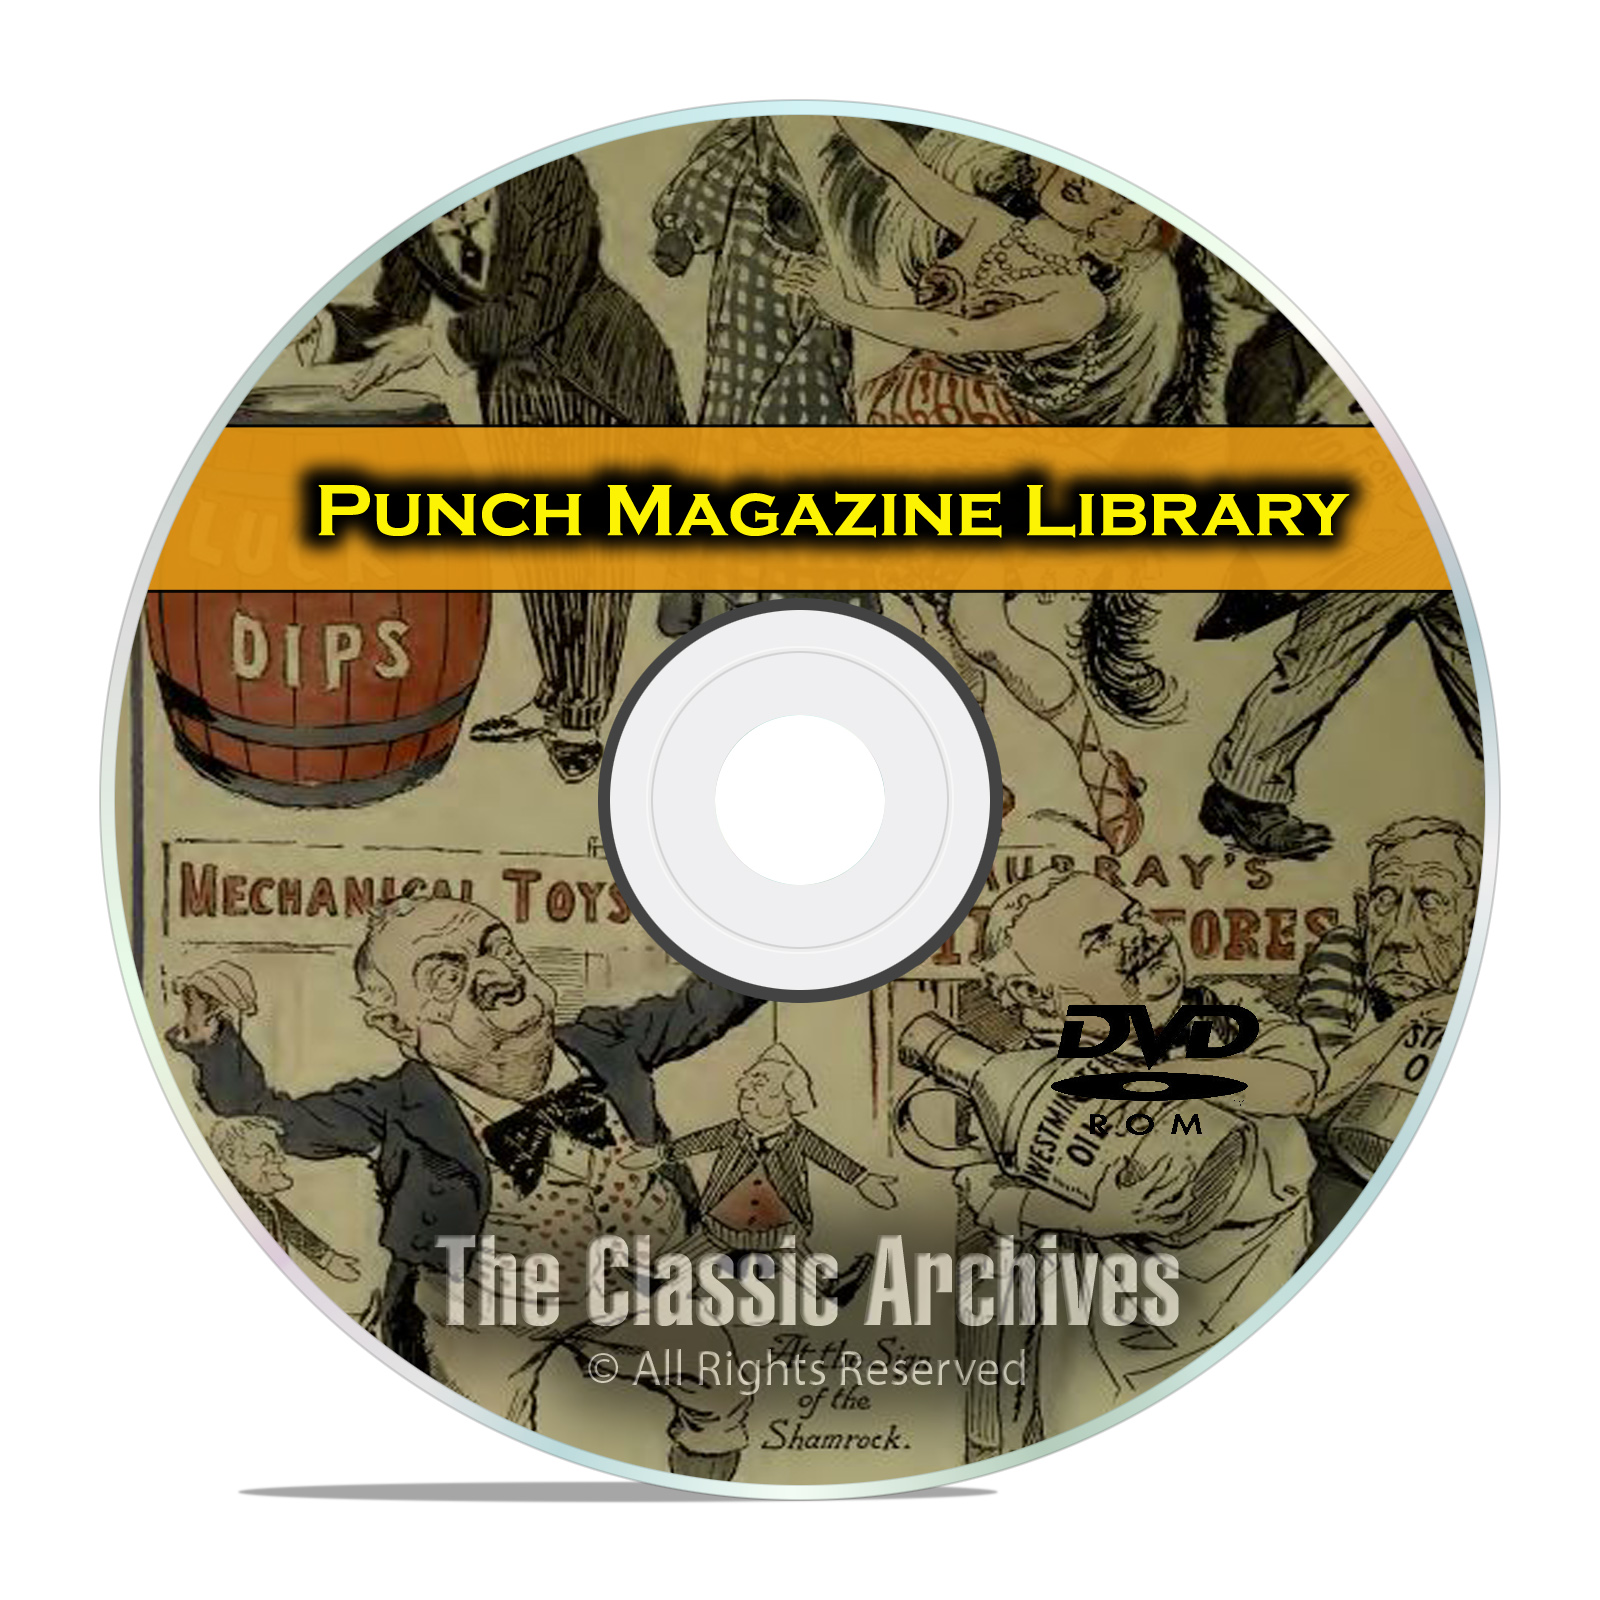 Punch Magazine, British Humor Comics Satire, 78 Volumes, 2028 Issues DVD